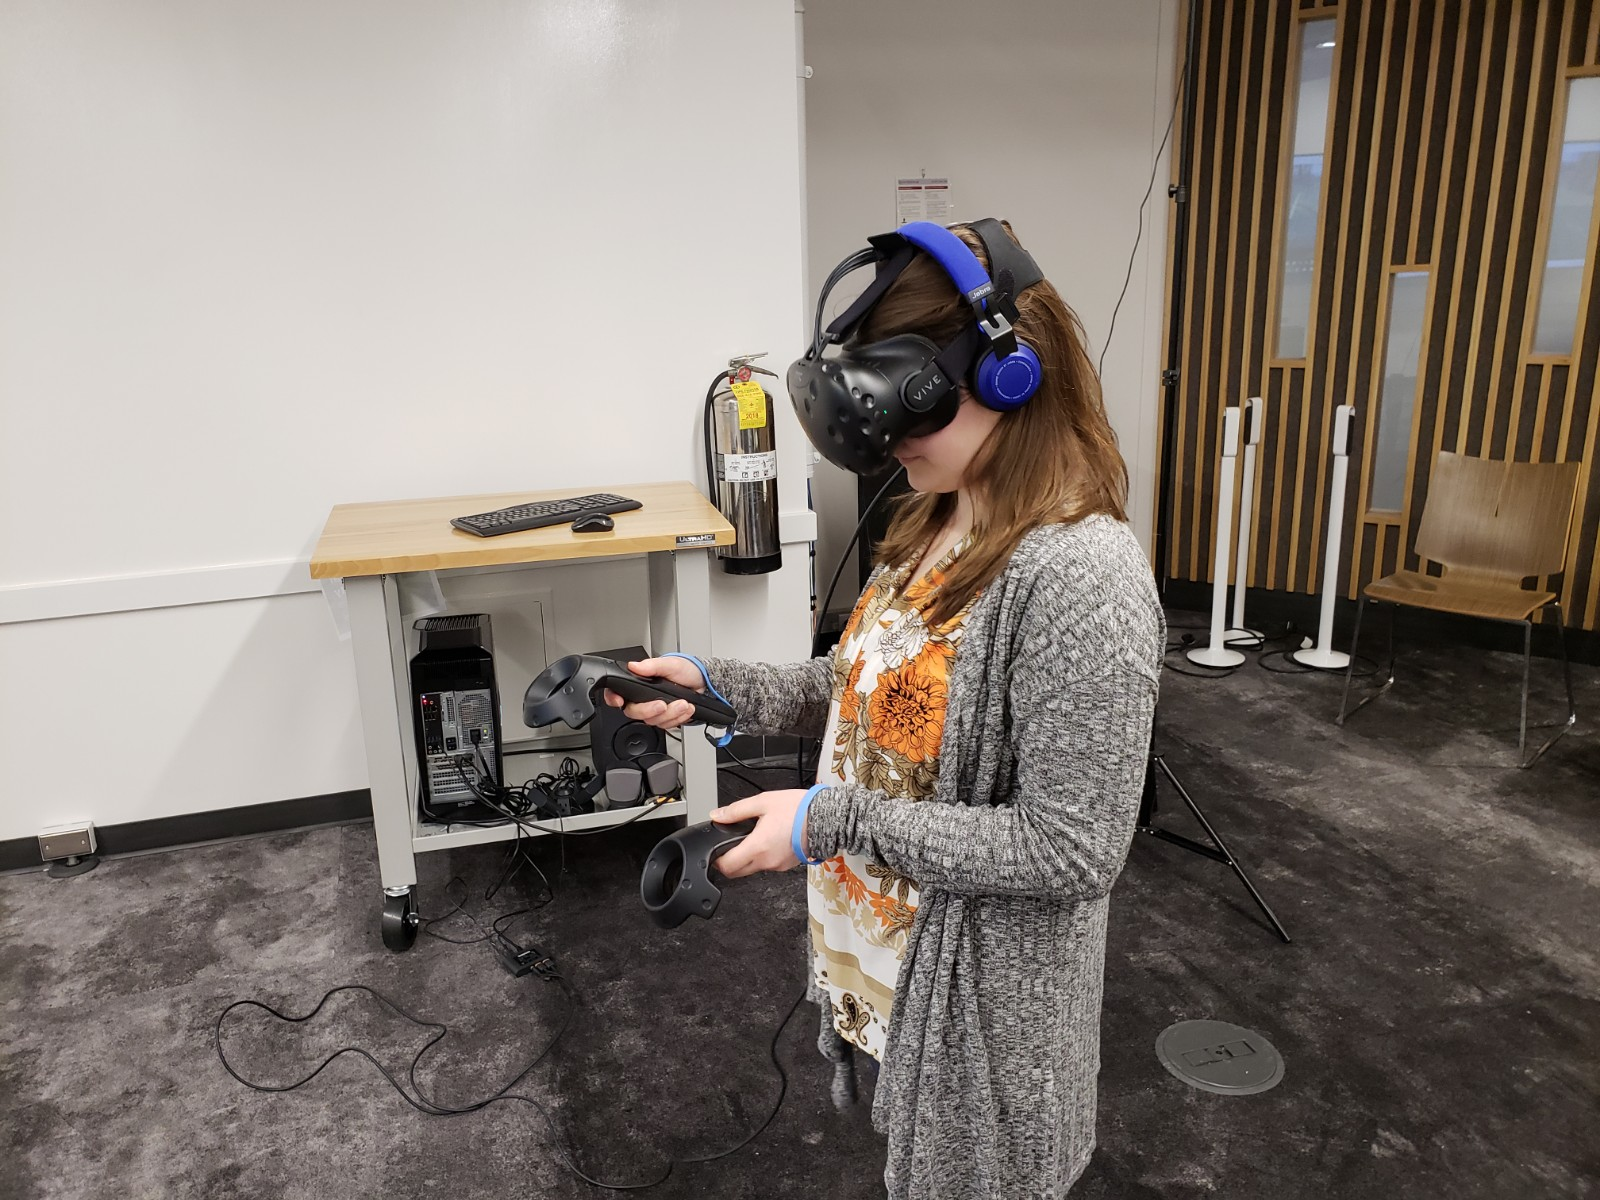 The full HTC Vive hehadset and controllers, which the author wears here, provides a fully immersive VR experience, but costs much more.  Photo Credit: Alyssa Wroblewski